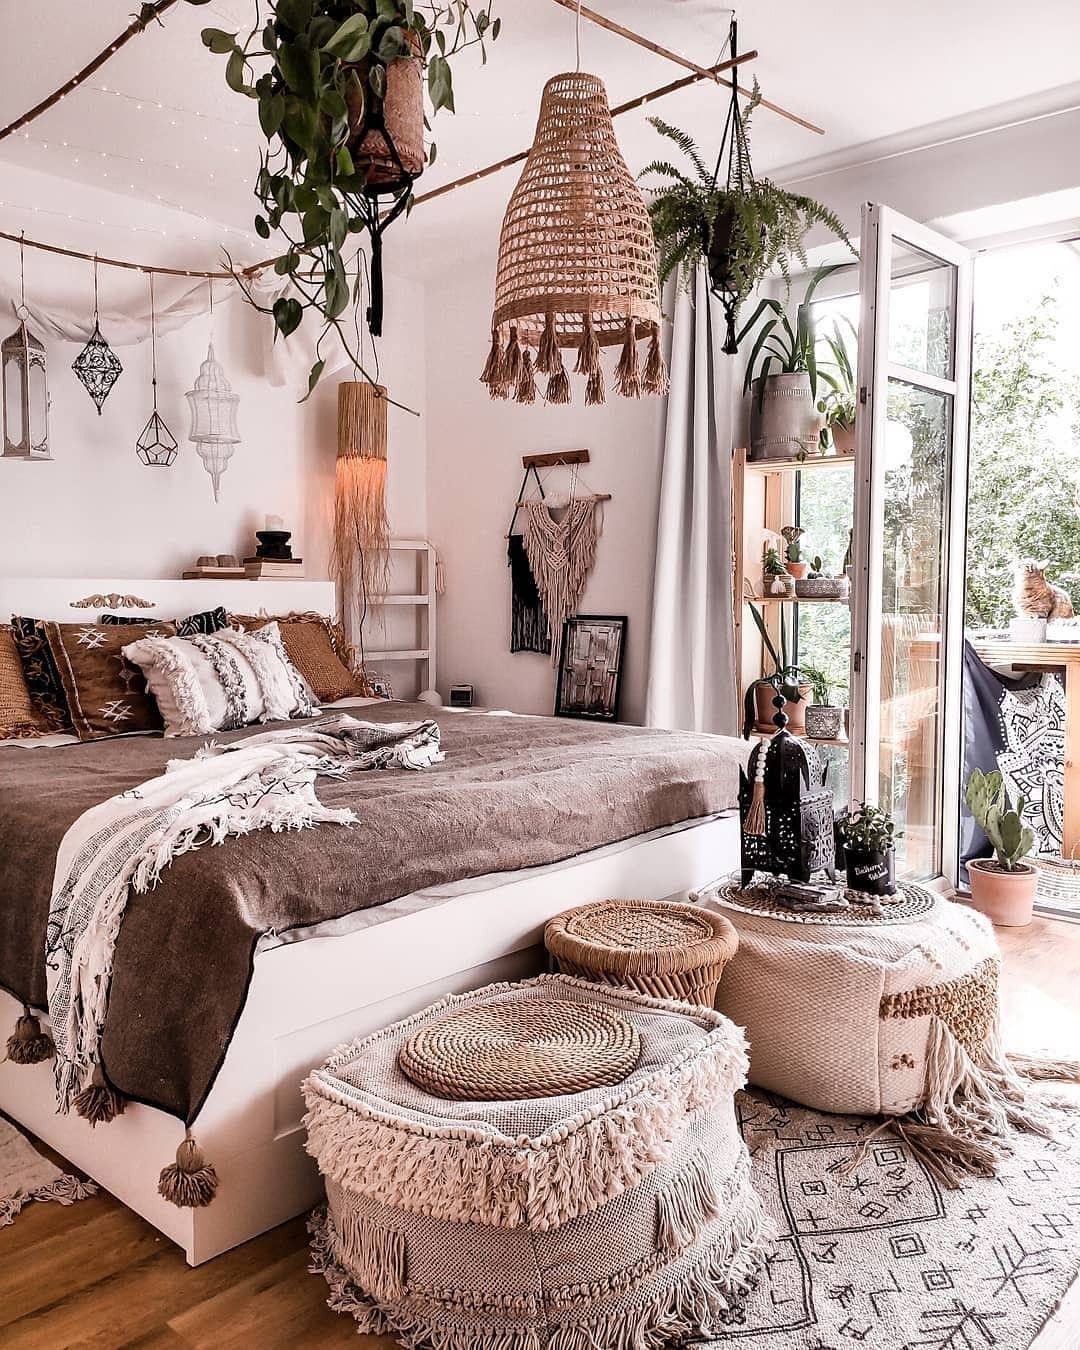 Bohemain Lifestyle Ideas for Bedroom Decors | Bohemian ... on Modern Bohemian Bedroom Decor  id=12965